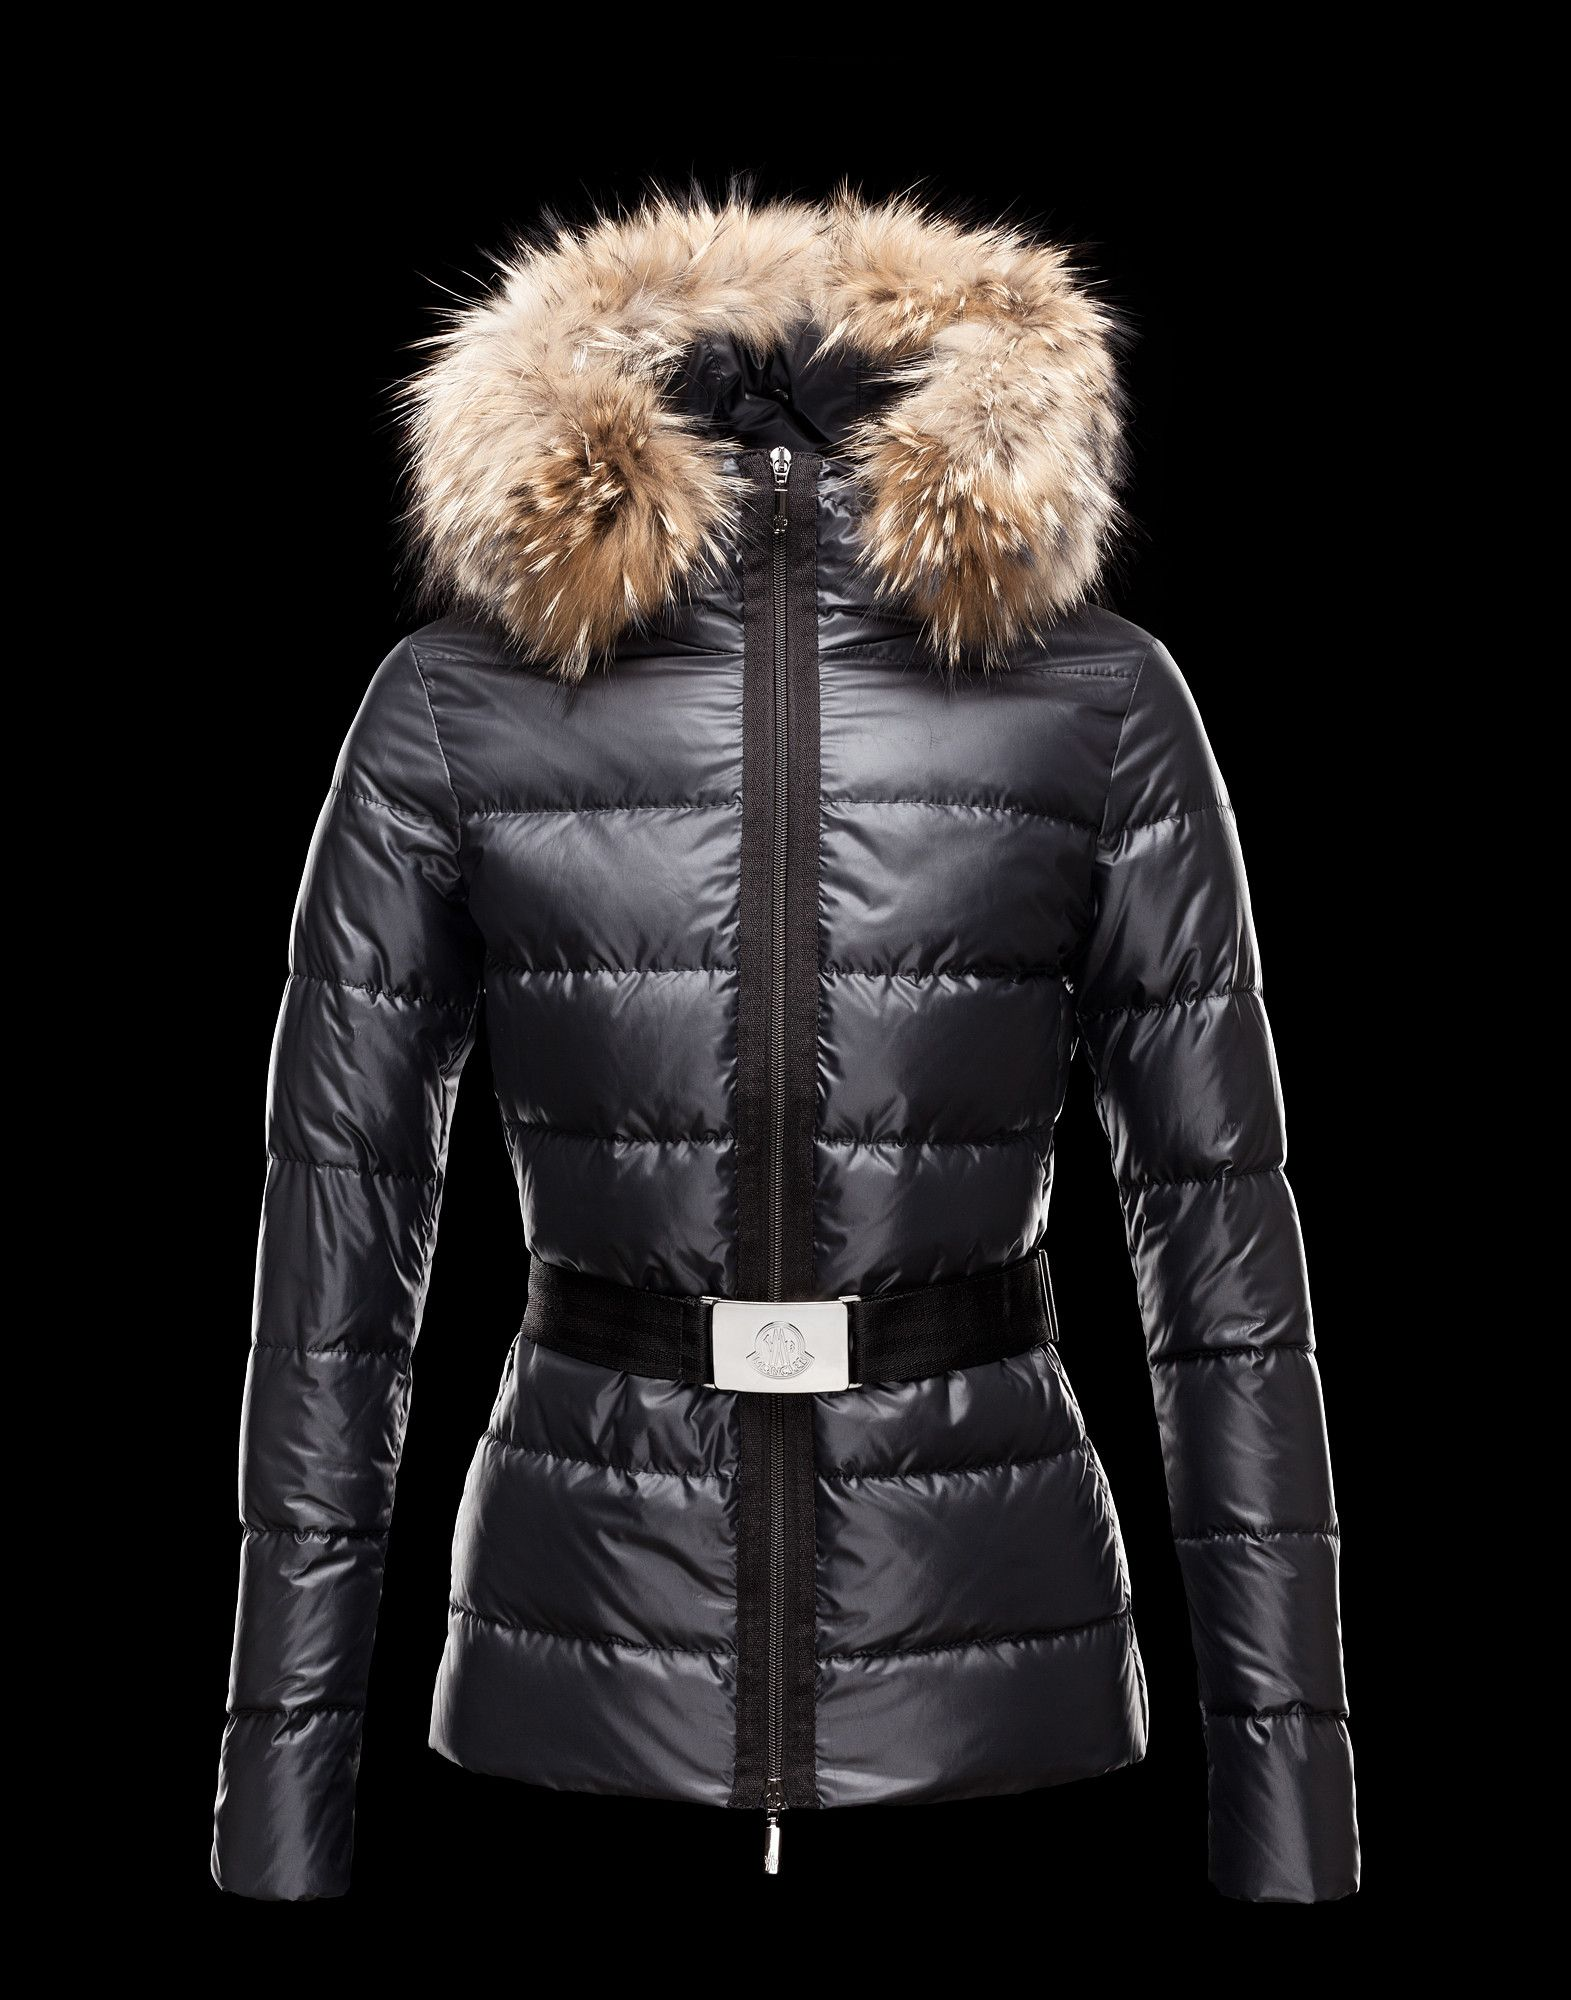 171b3ec70 MONCLER Women - Fall Winter 12 - OUTERWEAR - Jacket - ANGERS